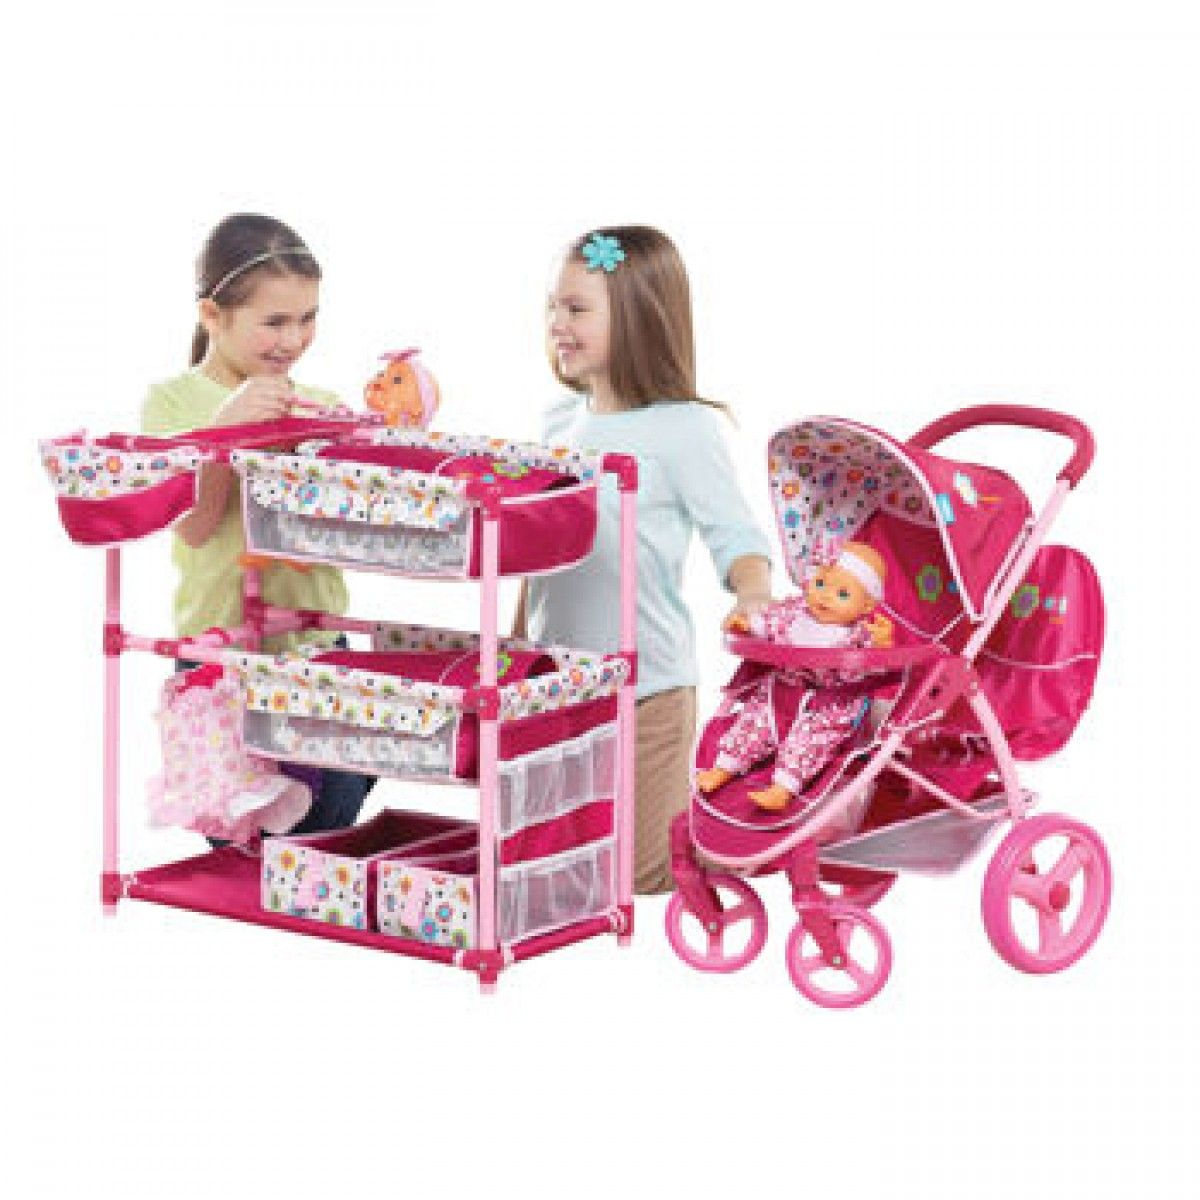 Malibu Doll Stroller Activity Center Playset | Activities ...